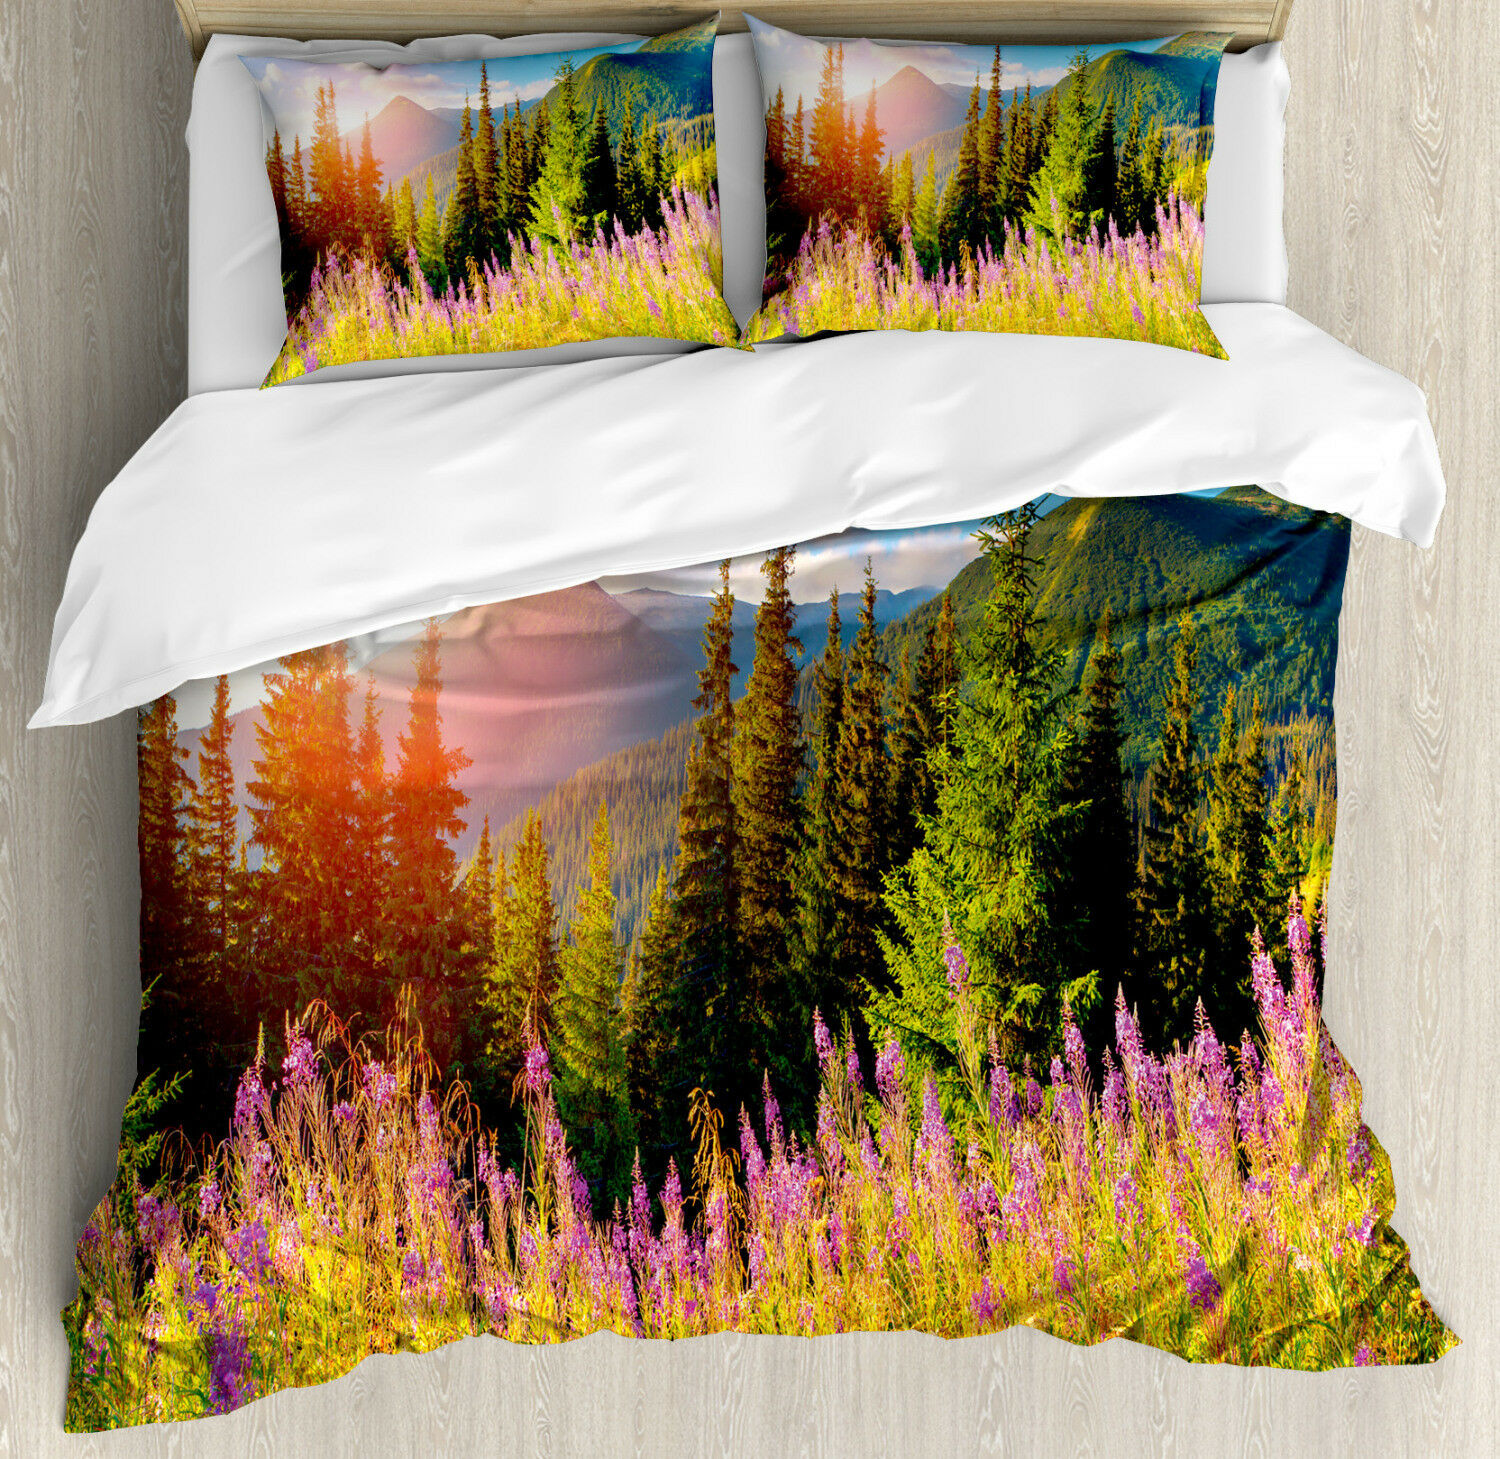 Nature Duvet Cover Set with Pillow Shams Spring Flowers Mountain Print